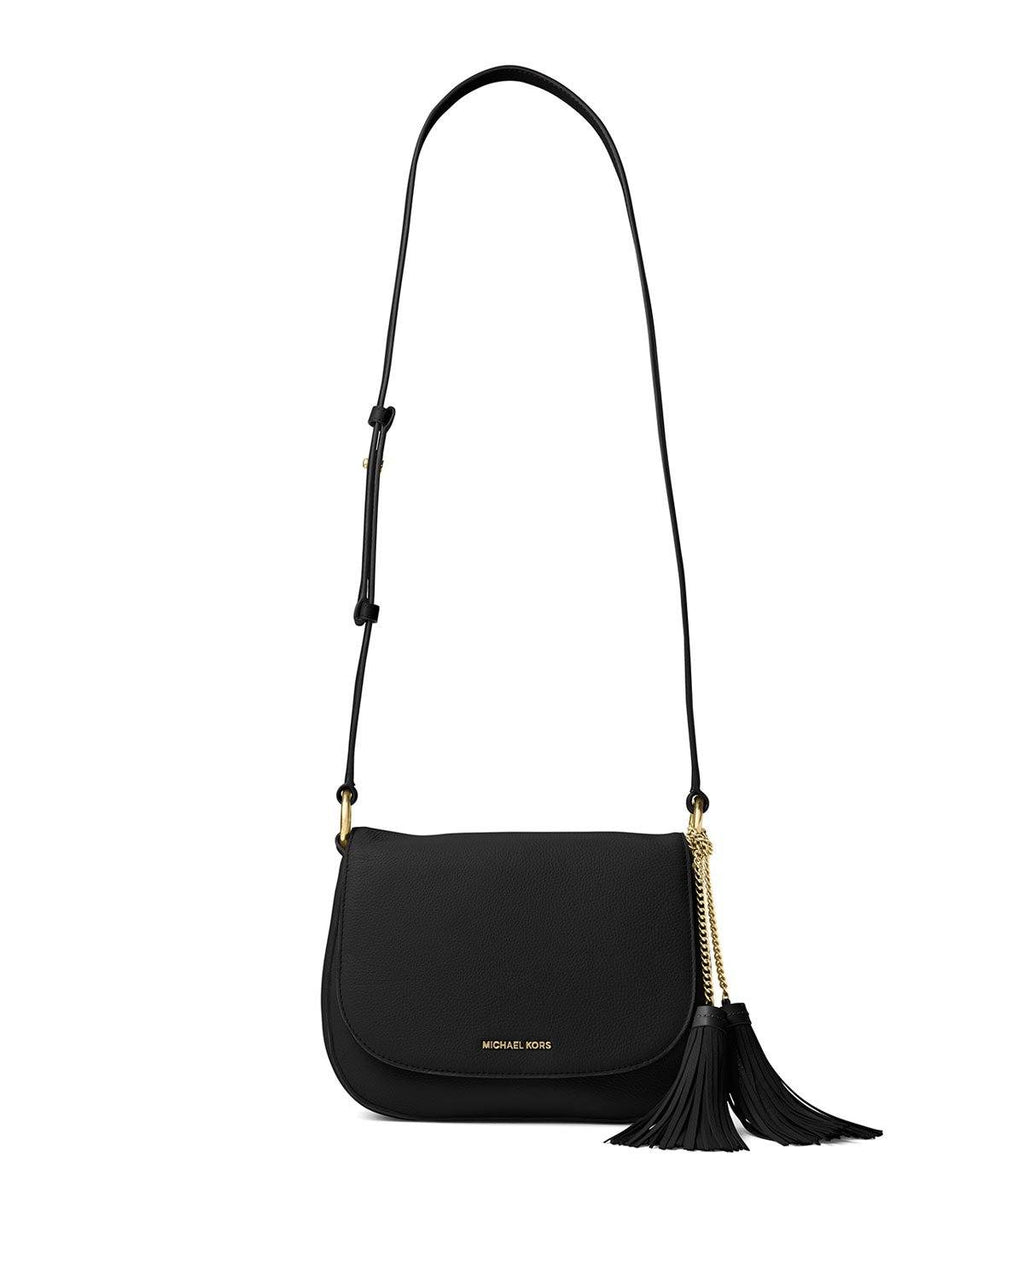 MICHAEL Michael Kors Elyse Large Saddle Bag Black